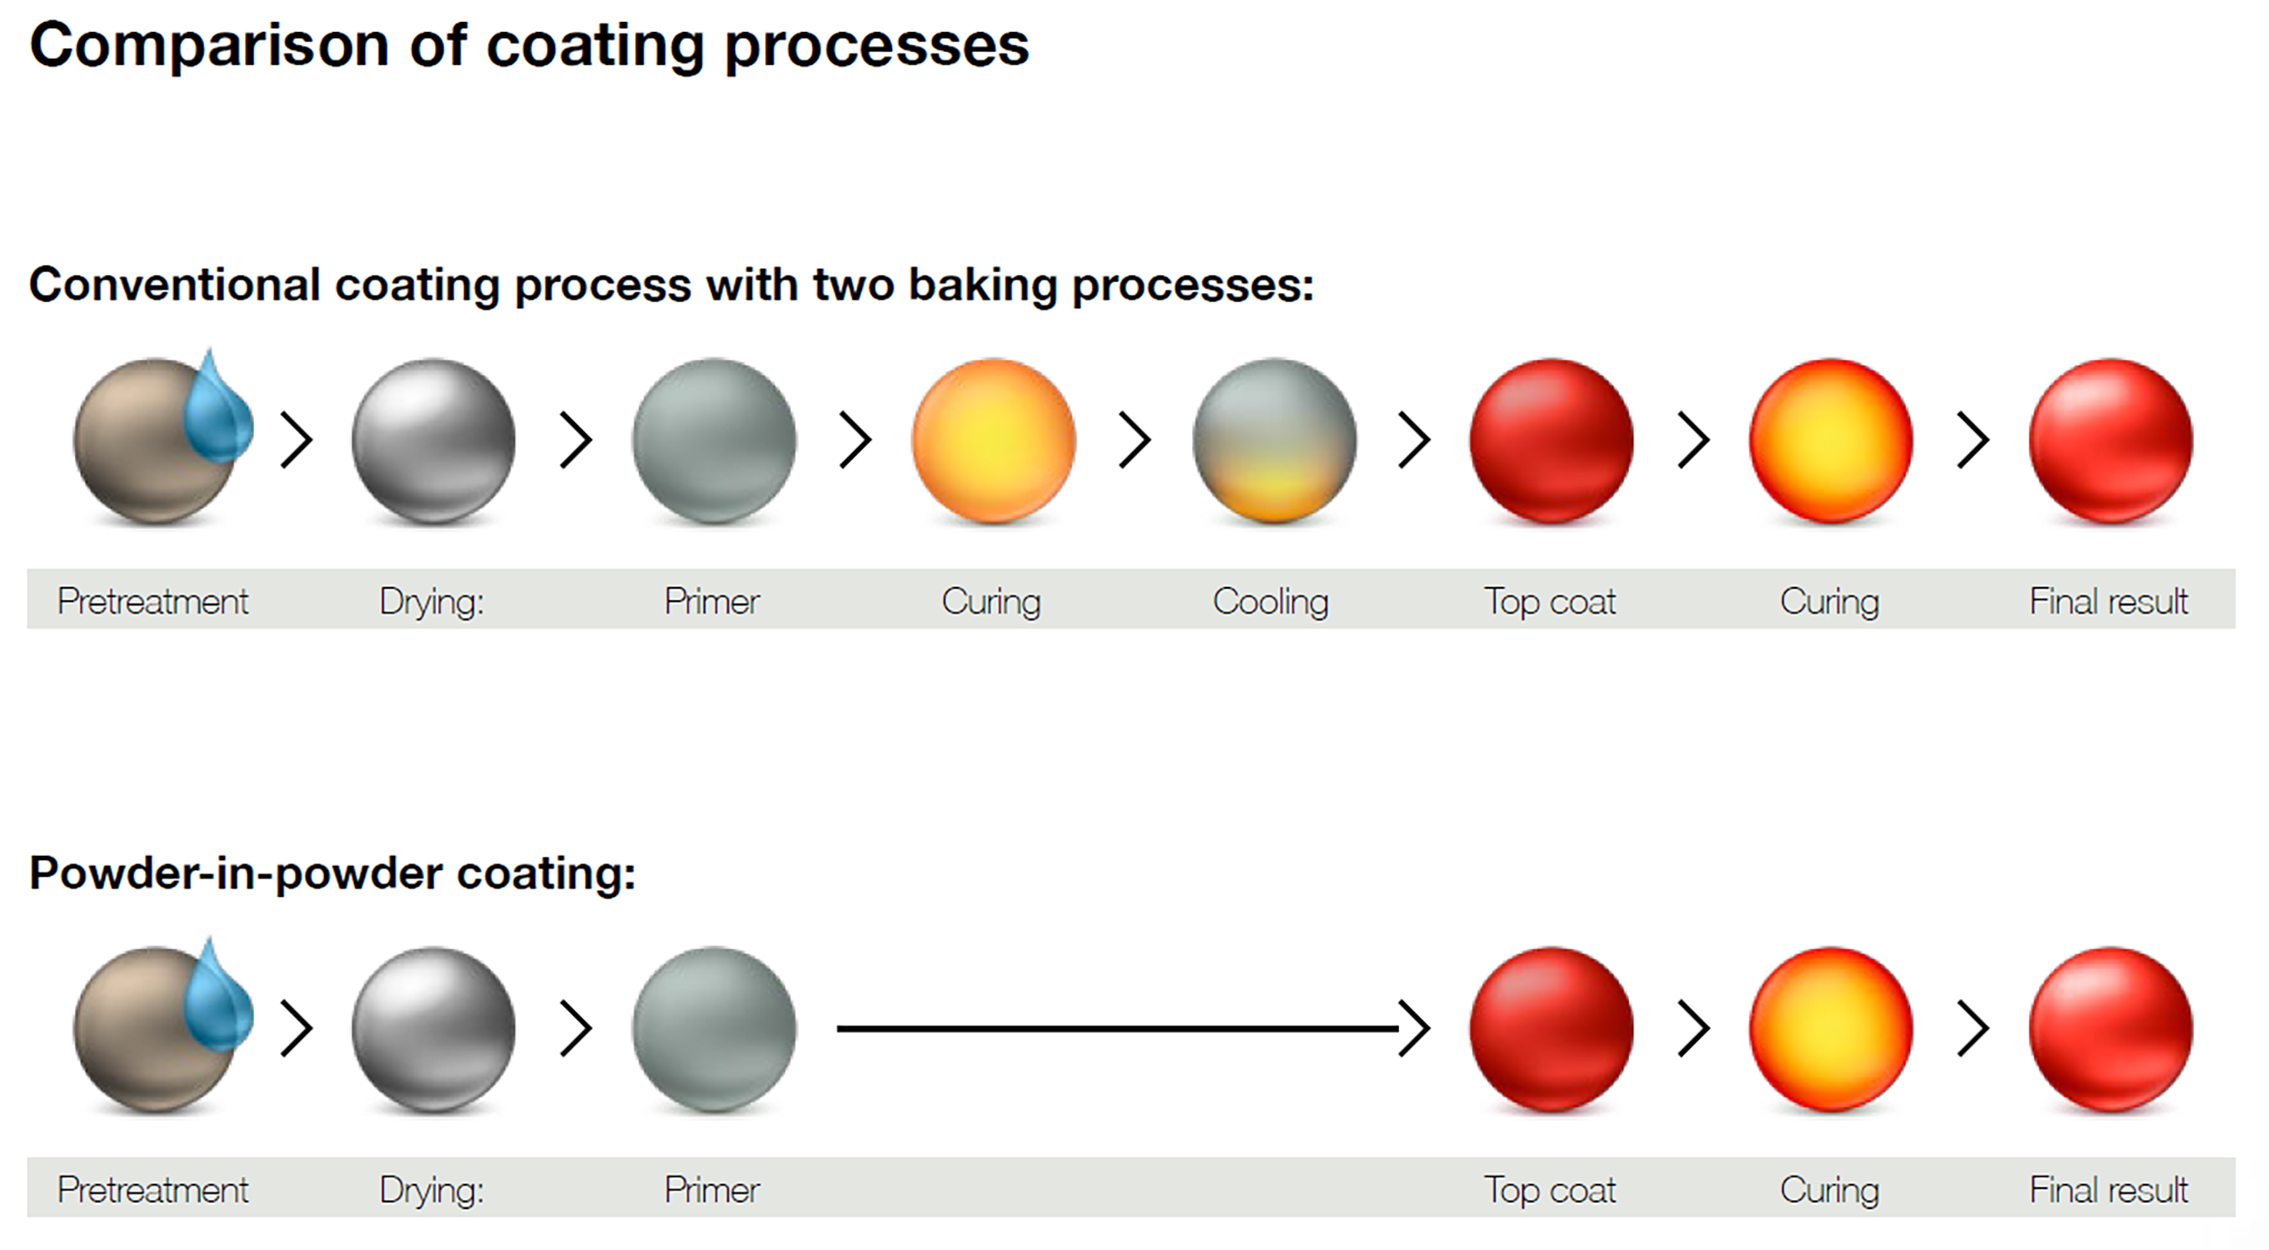 Powder-in-Powder coating process